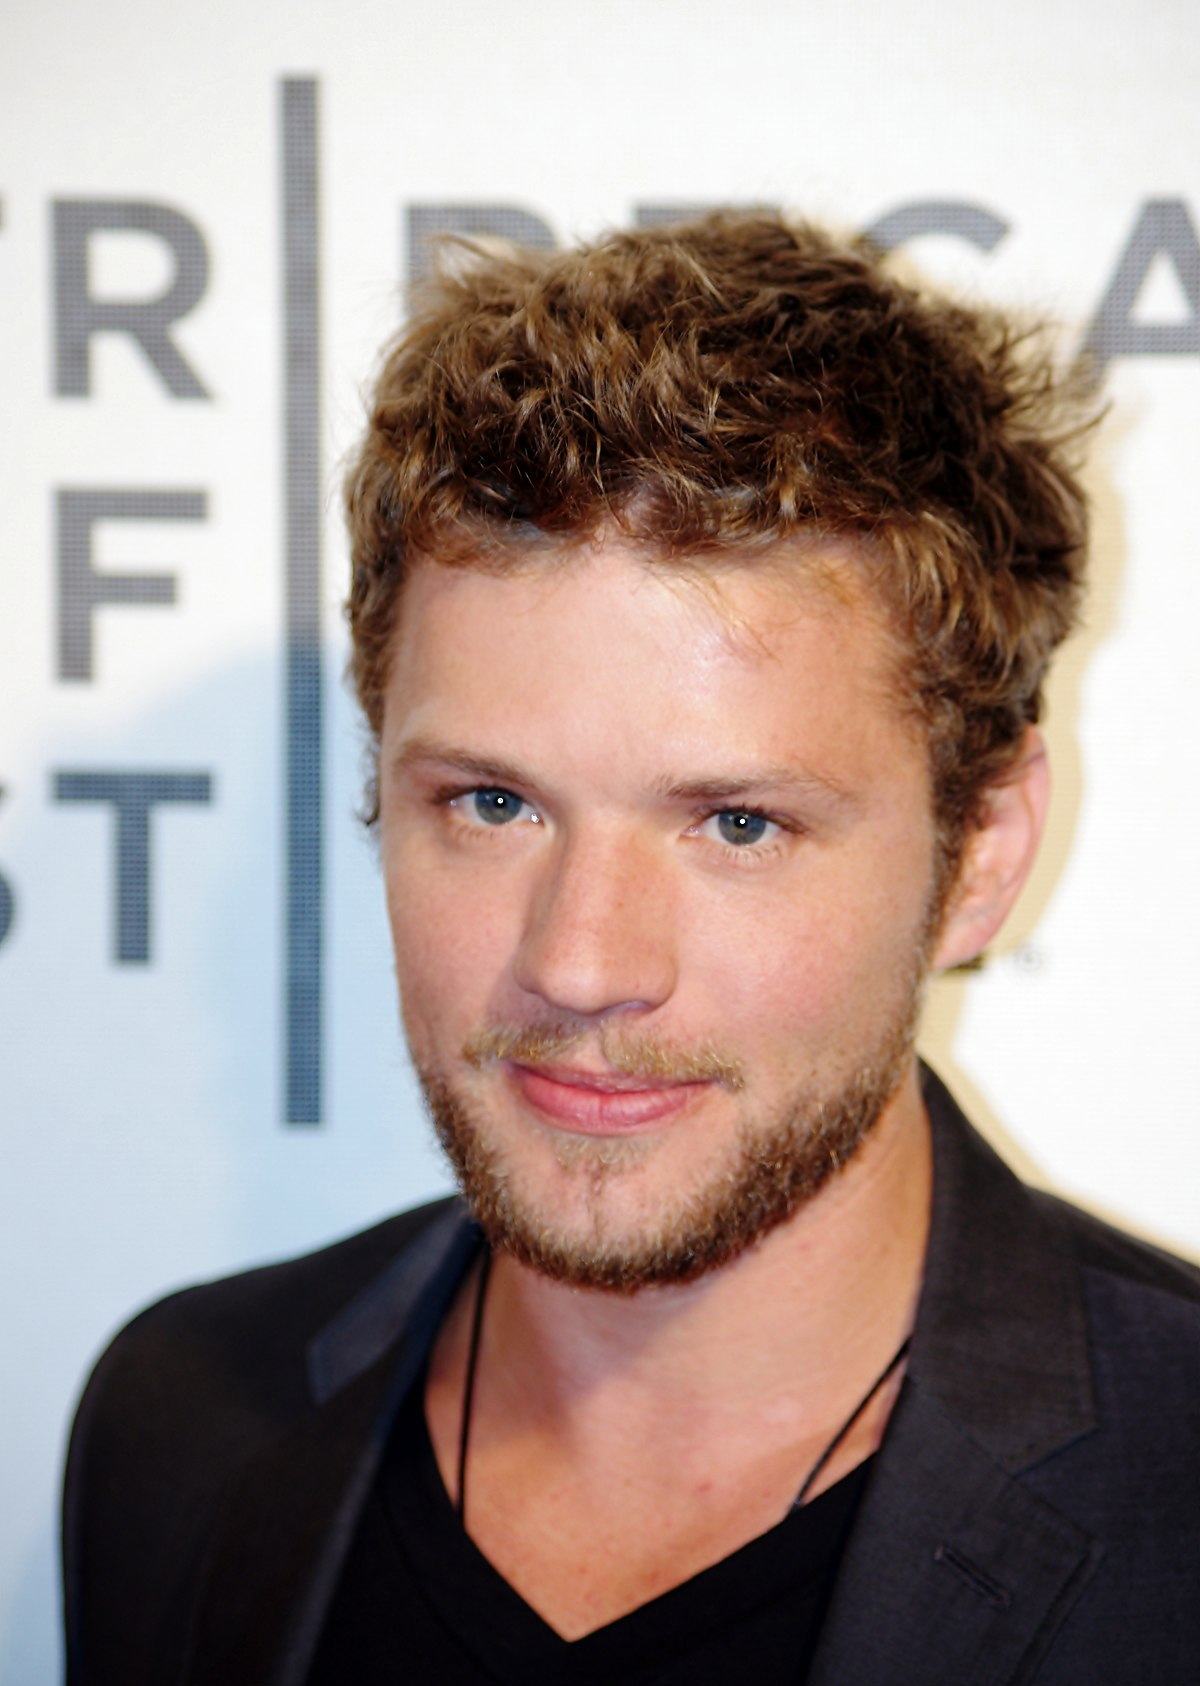 Ryan Phillippe - Wikipedia